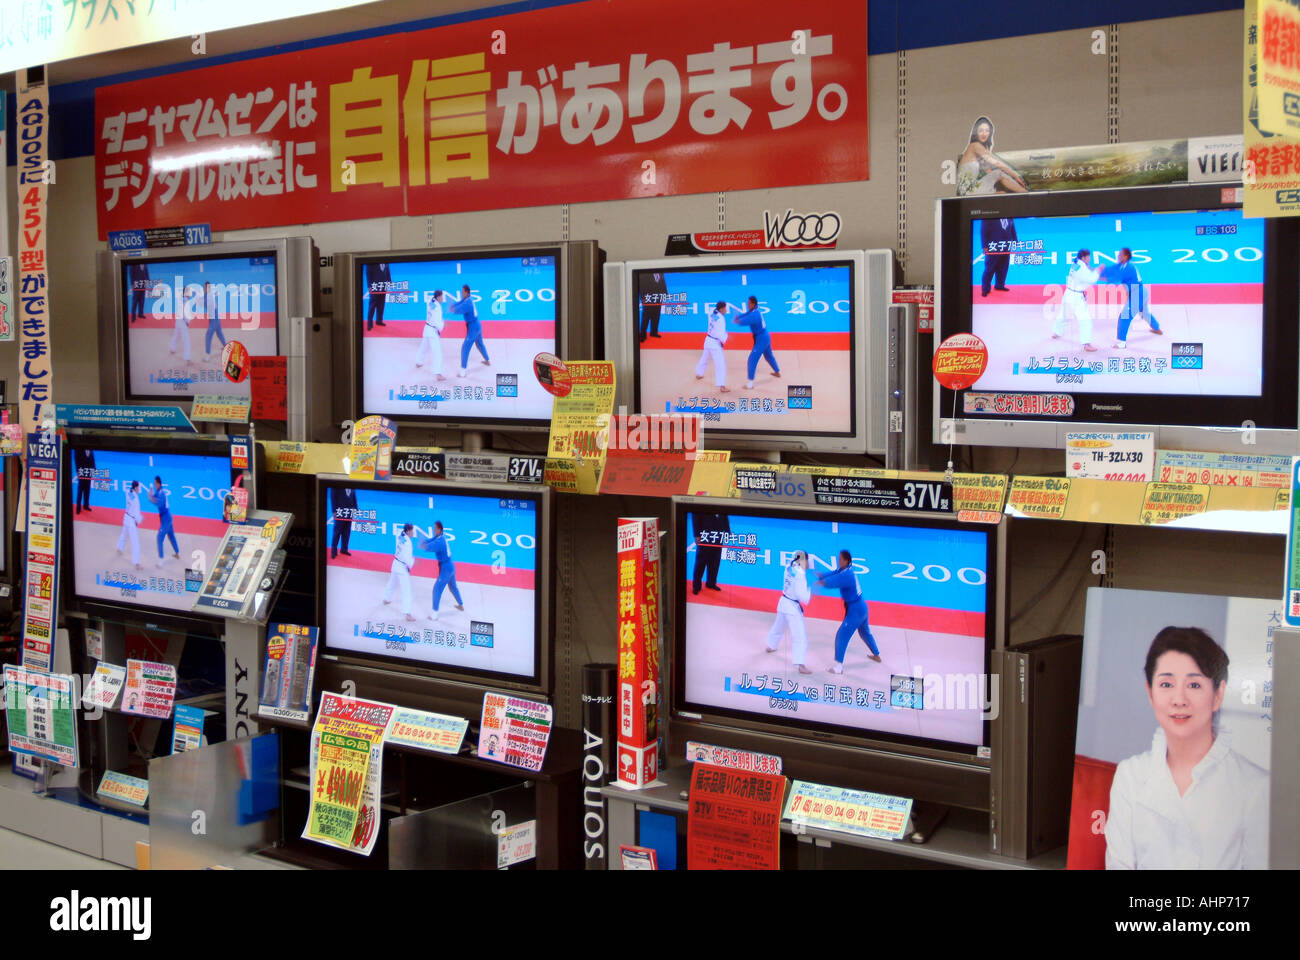 Televisions in an electrical shop Teramachi Kyoto Japan - Stock Image